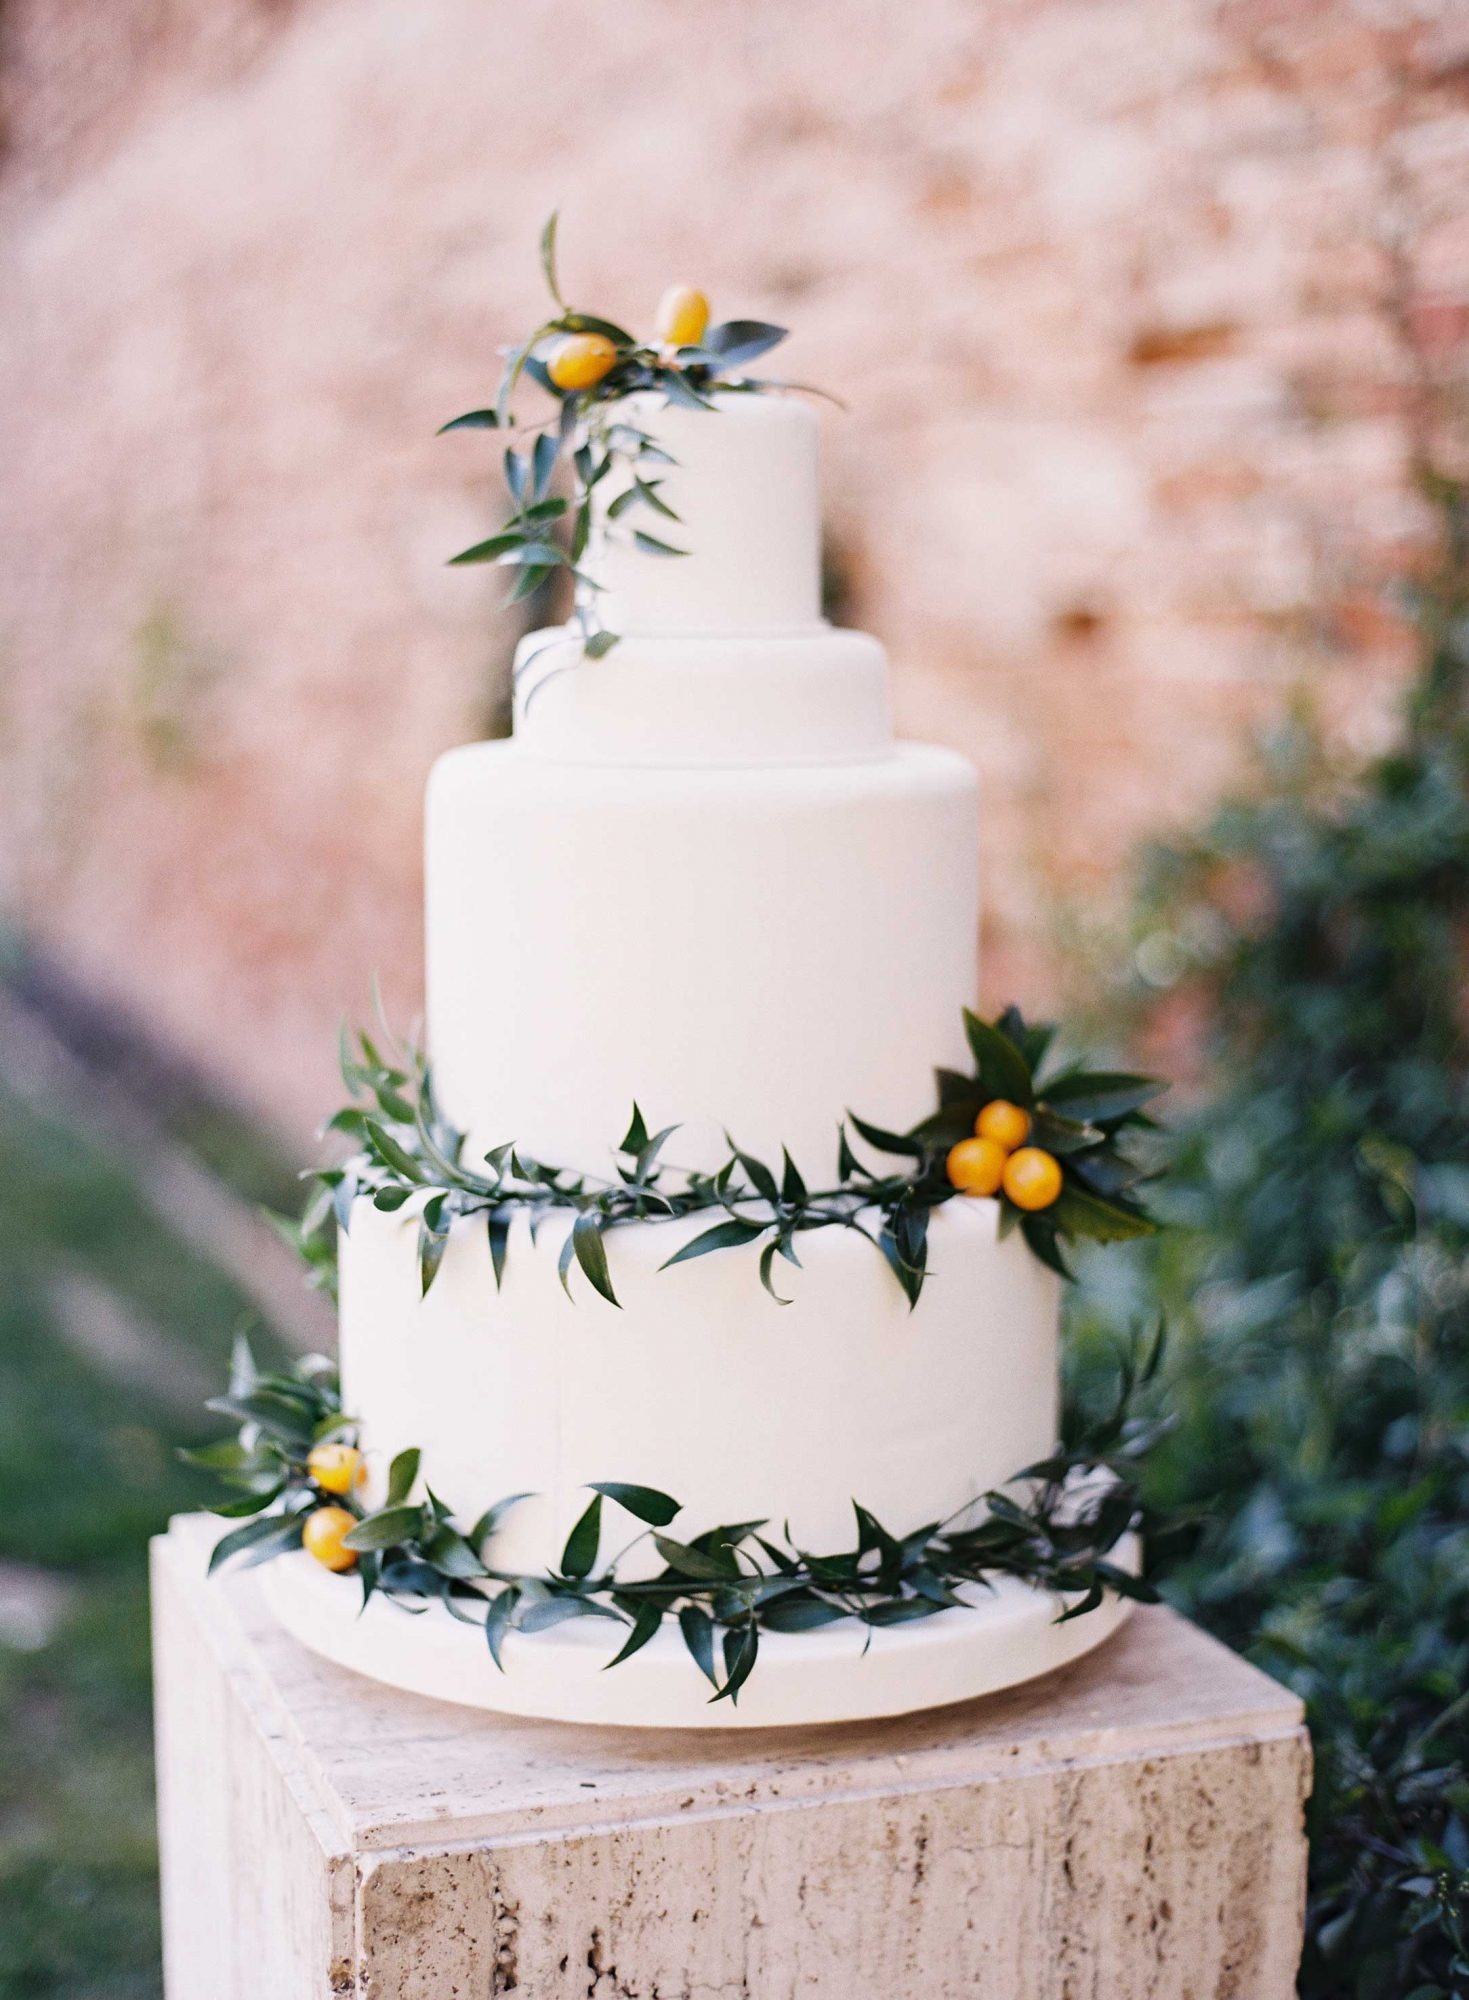 white cake with greenery